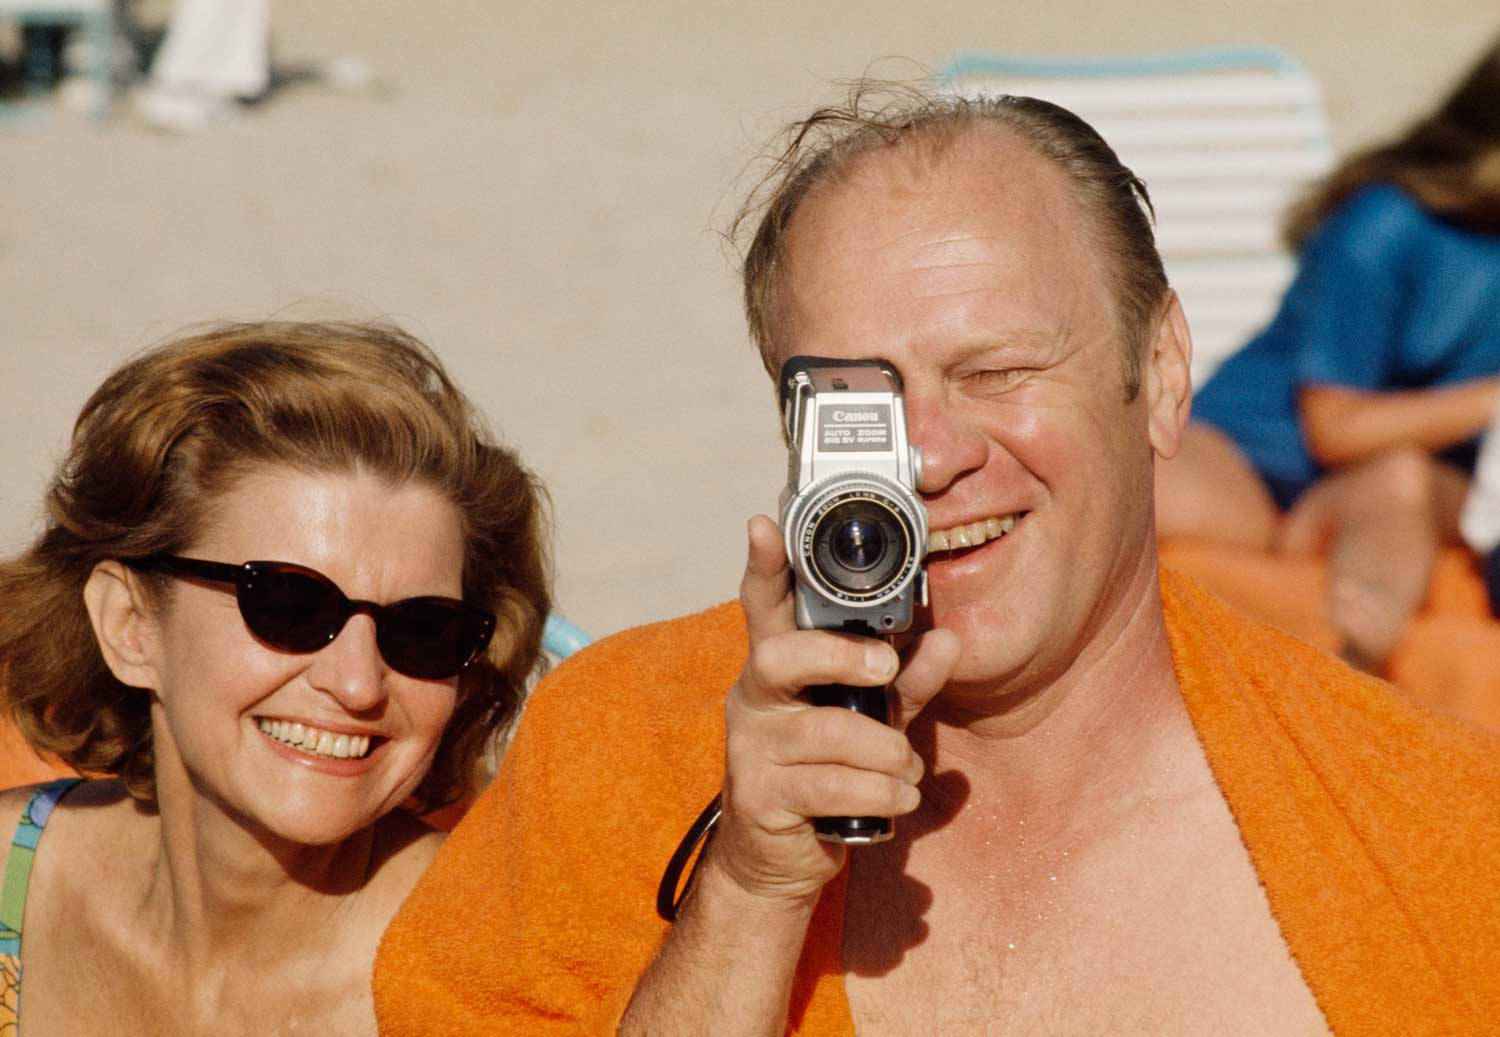 President Ford and First Lady Betty chose Mauna Kea Beach, Hawaii on the Big Island for a getaway vacation in 1974, but they couldn't escape the prying eyes of the press. Here, the president, a former All American football player at Michigan, turned his movie camera on a familiar photographer.